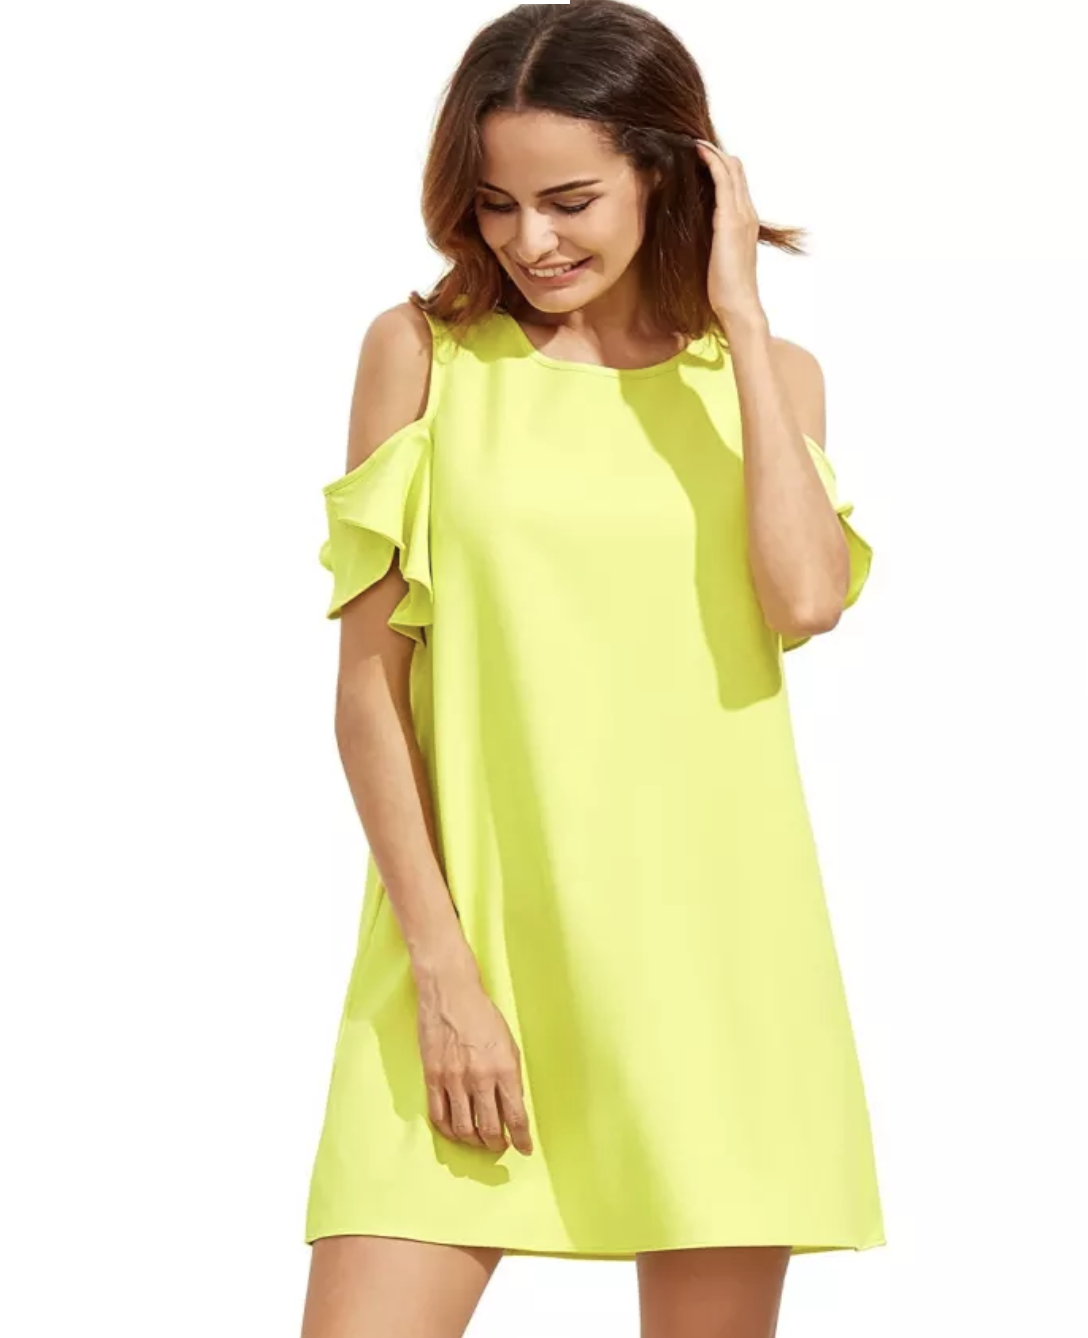 """The Shift - Summer hookups are gonna be lining up to slide in your DMs once you show them this sexy shift dress that wants everyone to know, """"I think you're so brave for living in the hundreds."""""""